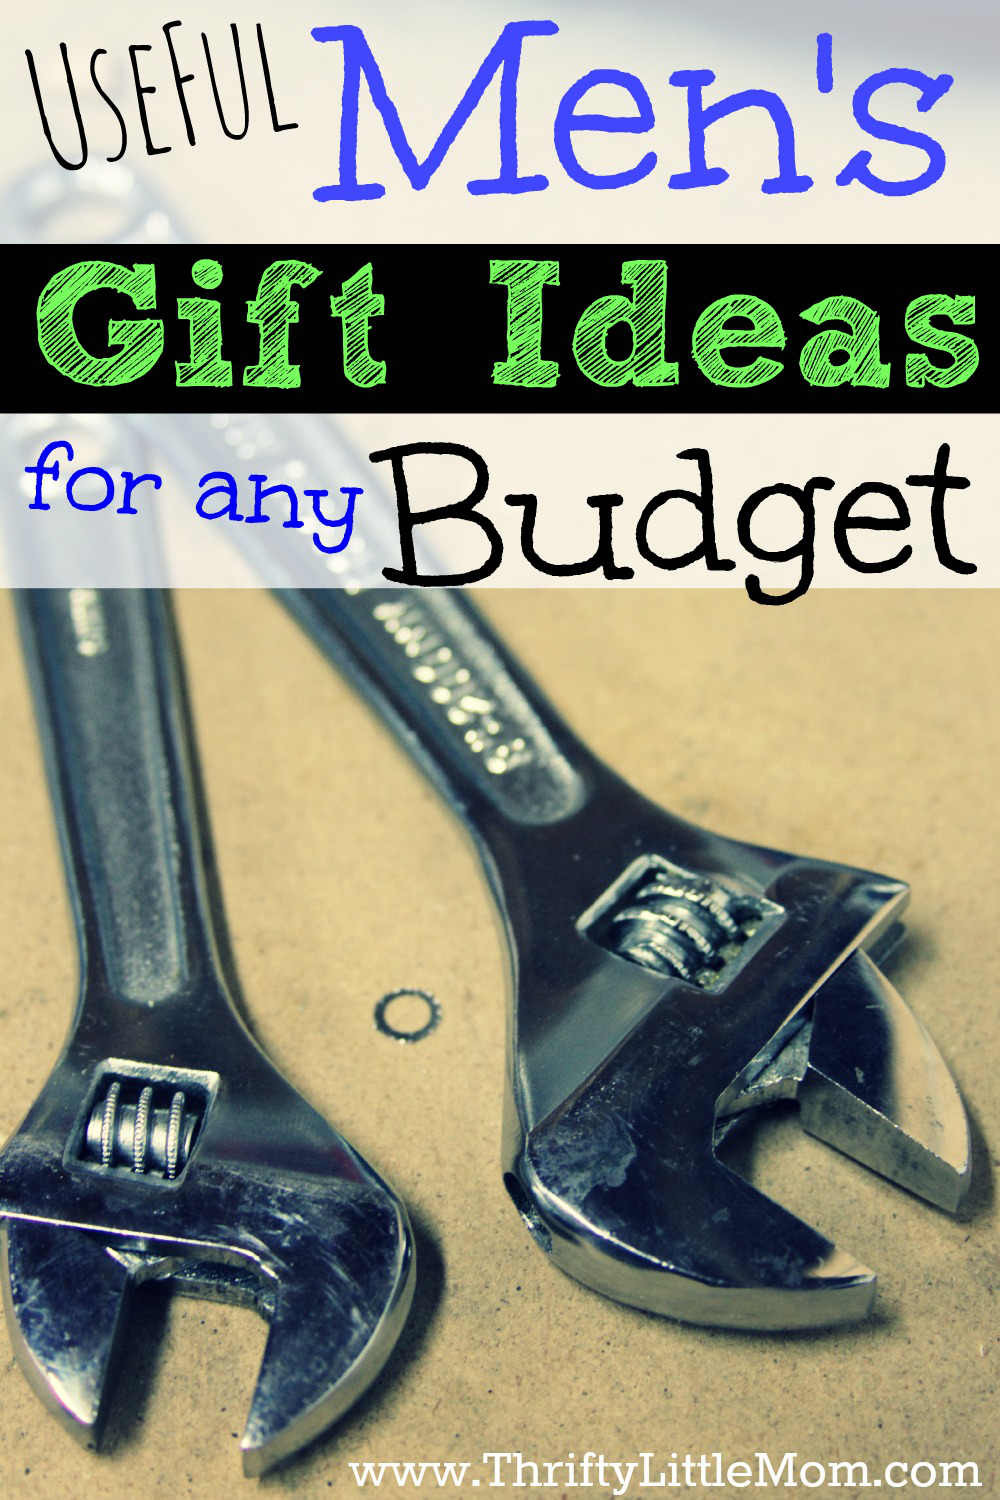 Best ideas about $10 Gift Ideas For Guys . Save or Pin Useful Men s Gift Ideas For Any Bud Gifts from $10 to Now.